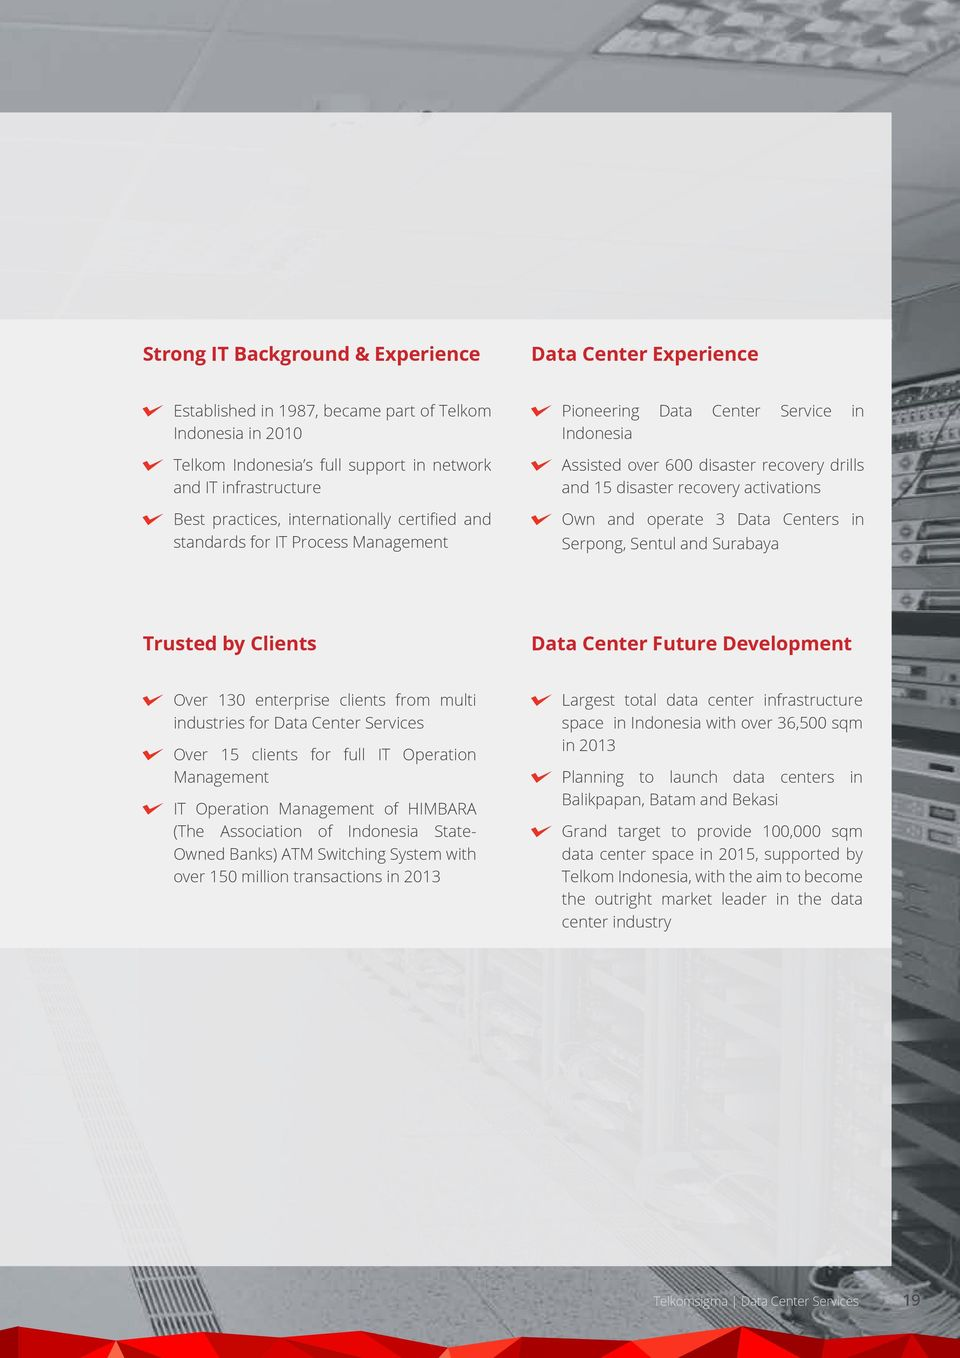 operate 3 Data Centers in Serpong, Sentul and Surabaya Trusted by Clients Data Center Future Development Over 130 enterprise clients from multi industries for Data Center Services Over 15 clients for